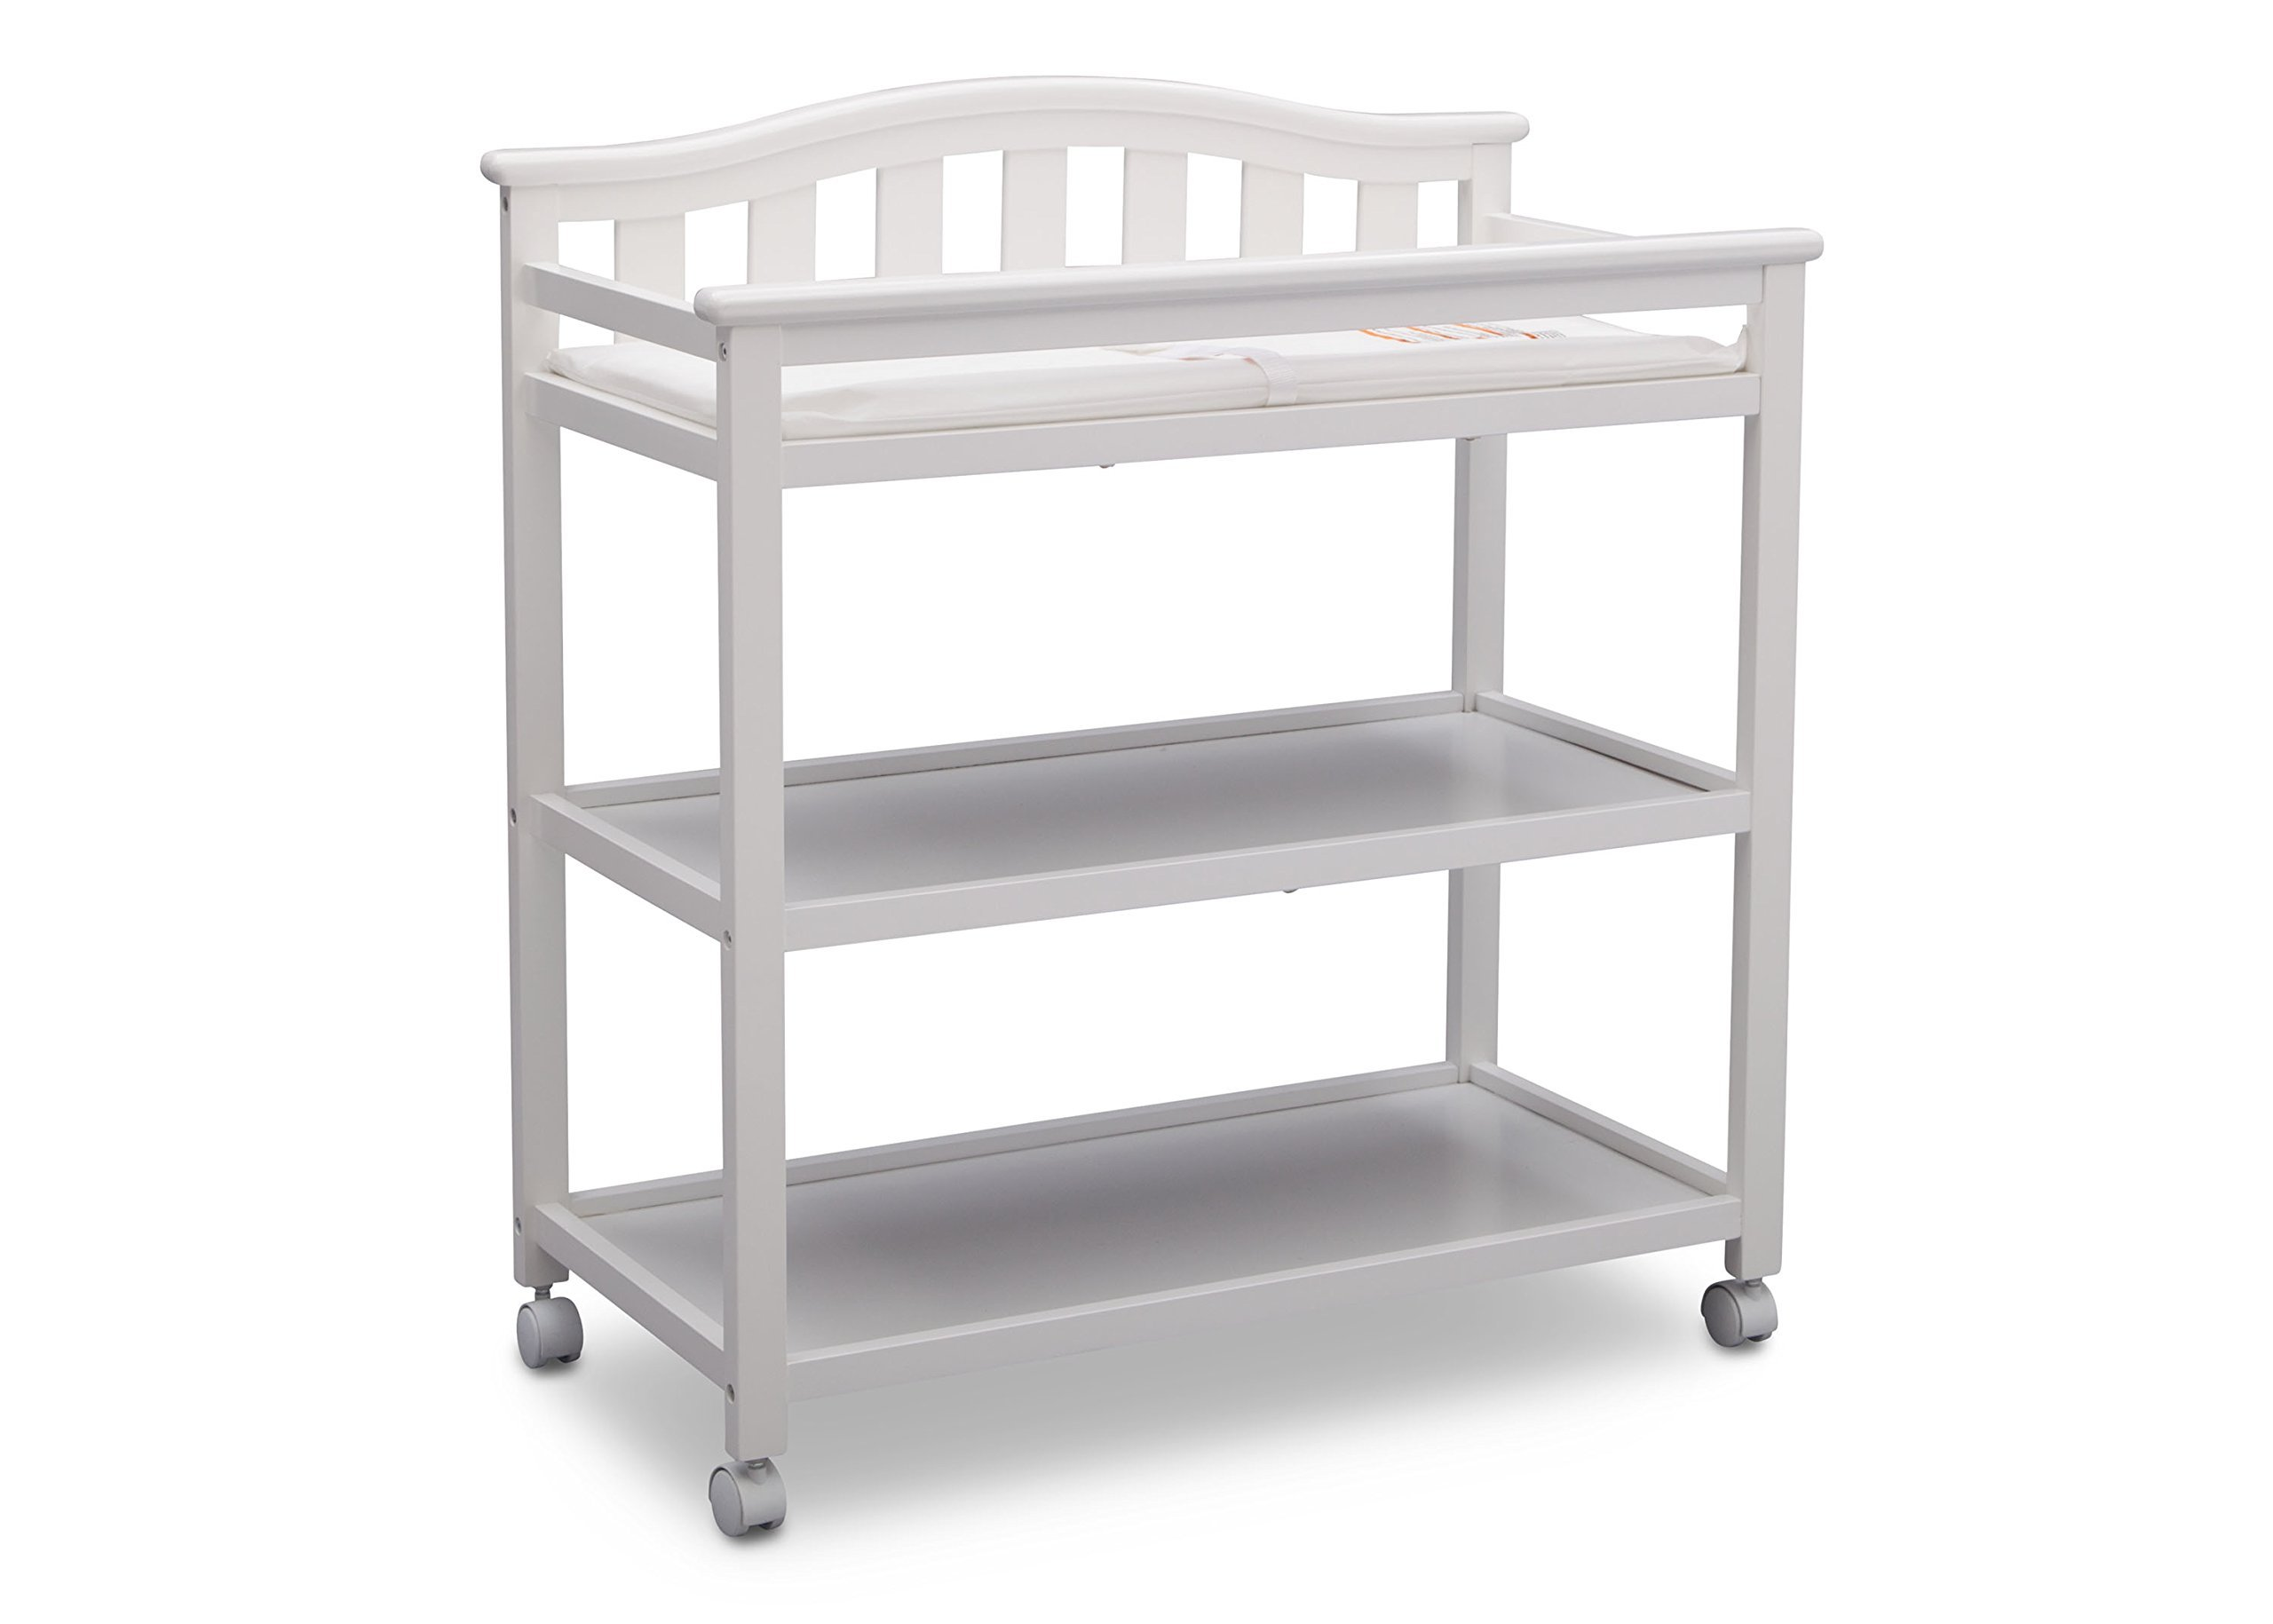 Delta Children Bell Top Changing Table with Casters, Bianca (White) and Simmons Kids Beautysleep Naturally Contour Pad